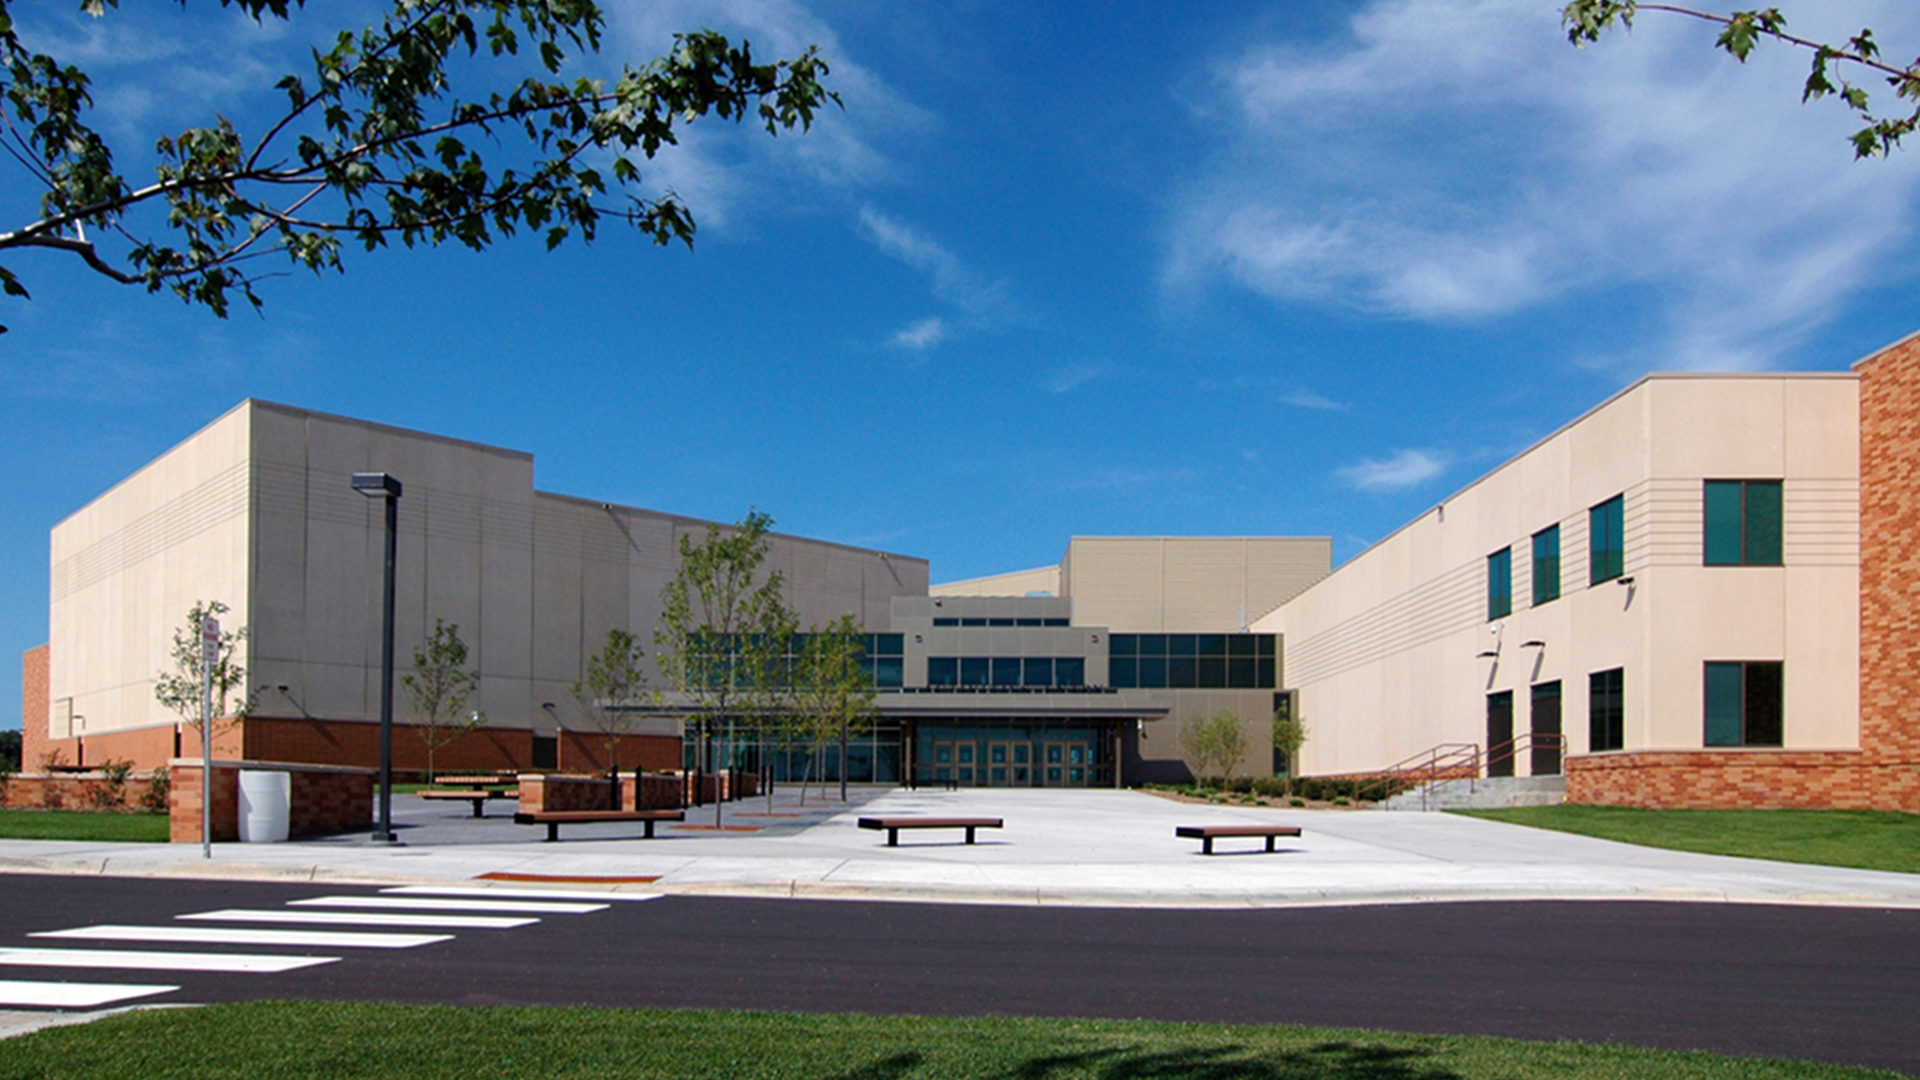 East Ridge High School Exterior Entrance for the Active Center